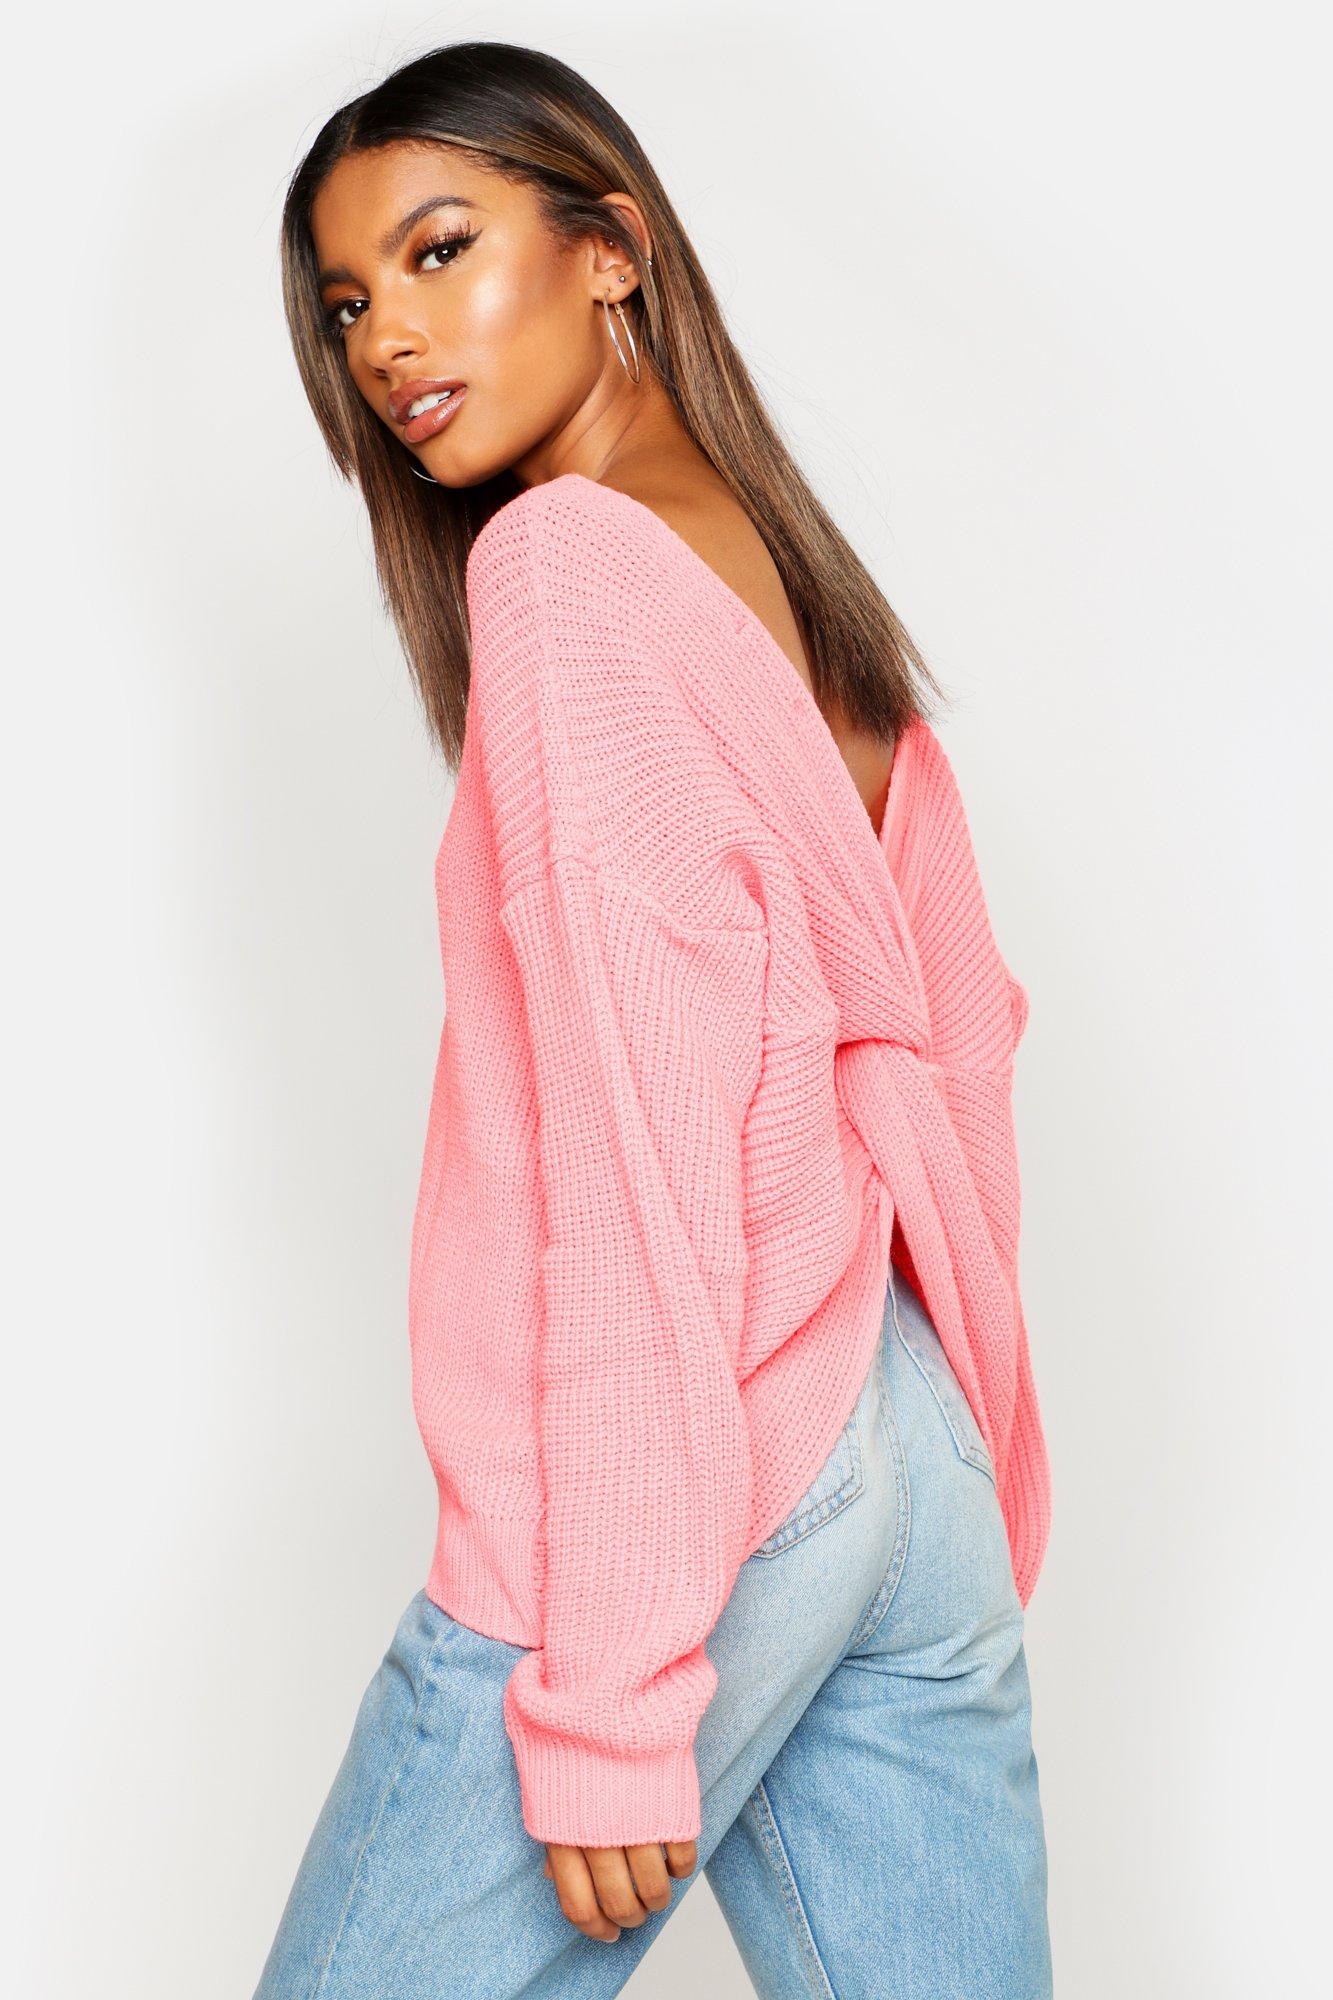 Womens Kurz Pullover mit Drehdetail - coral - S/M, Coral - Boohoo.com